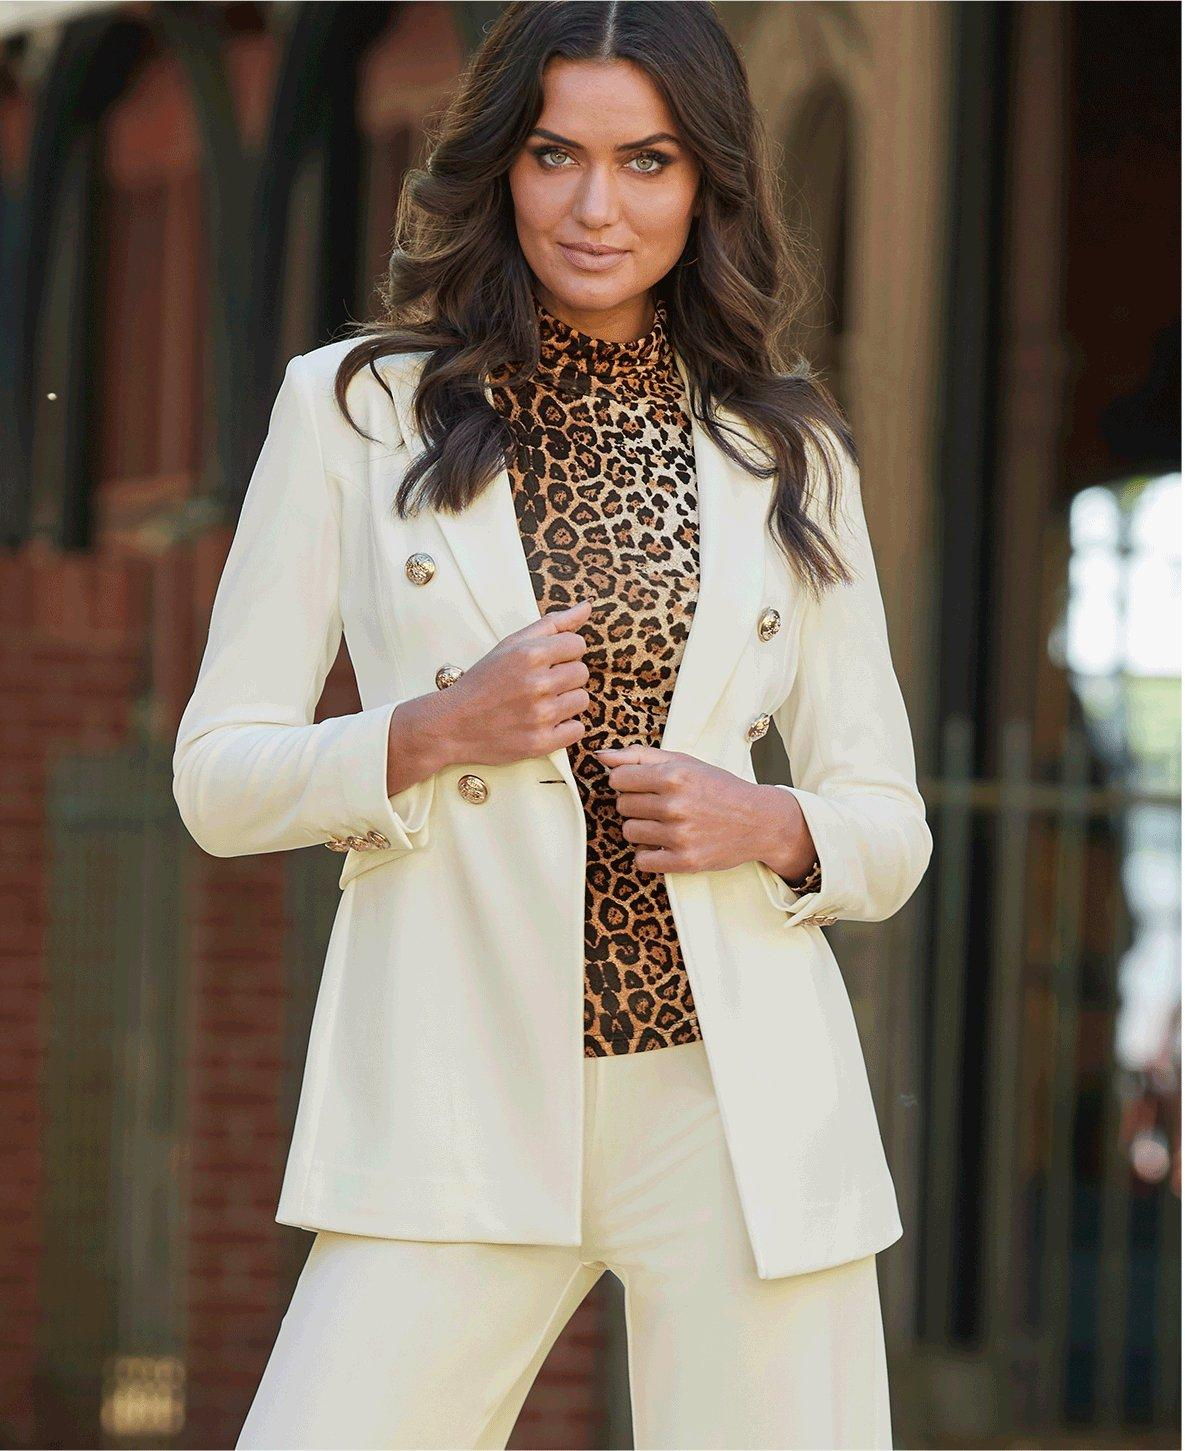 model wearing a white double-breasted blazer, leopard print turtleneck top, and white pants.